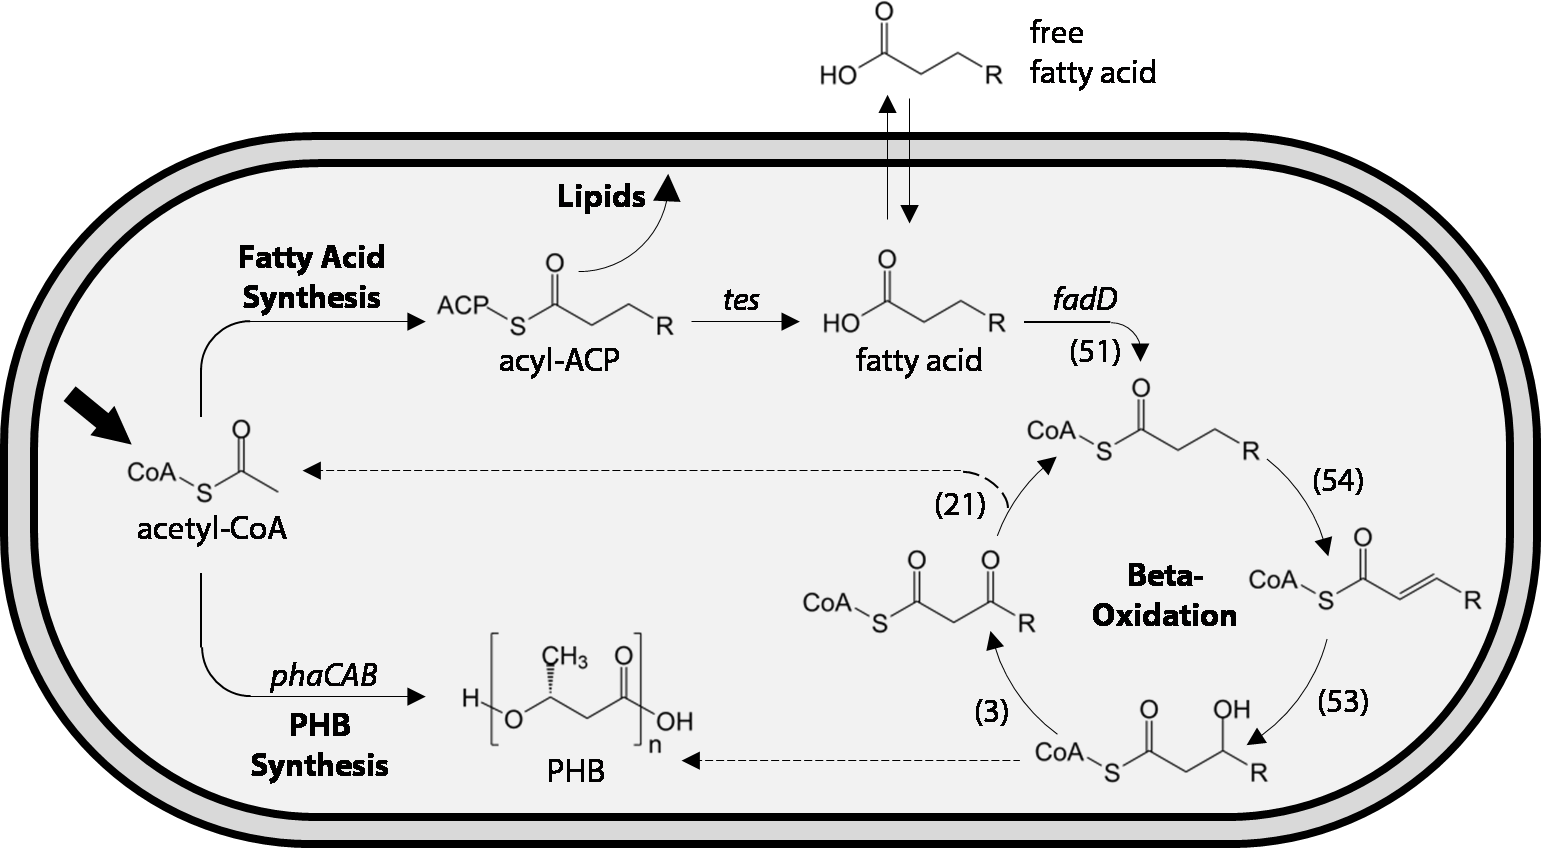 Fatty Acid That Is Oil At Room Temperature